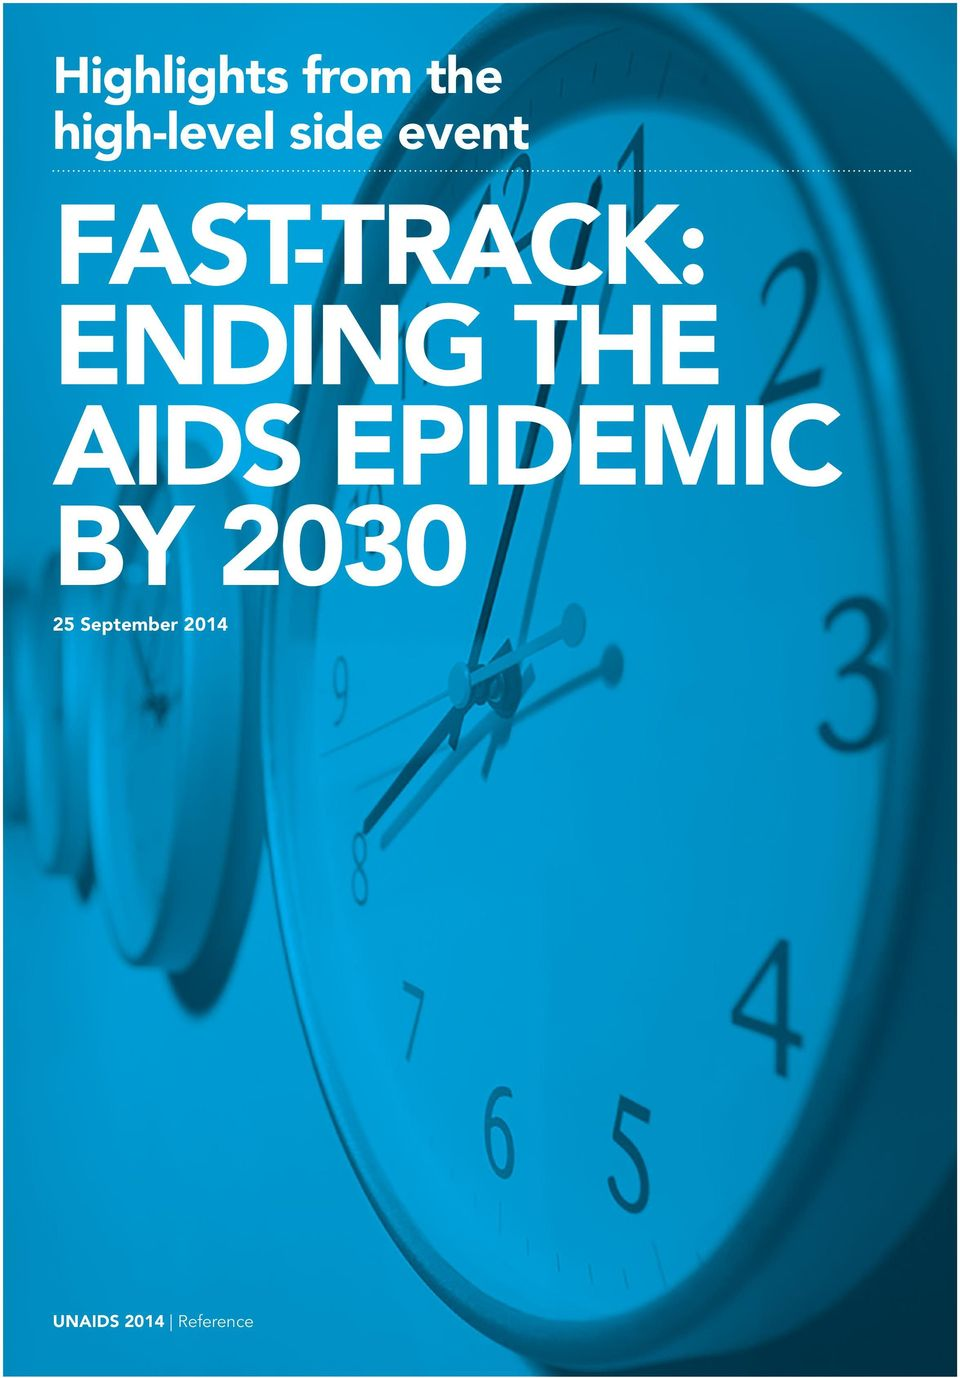 THE AIDS EPIDEMIC BY 2030 25